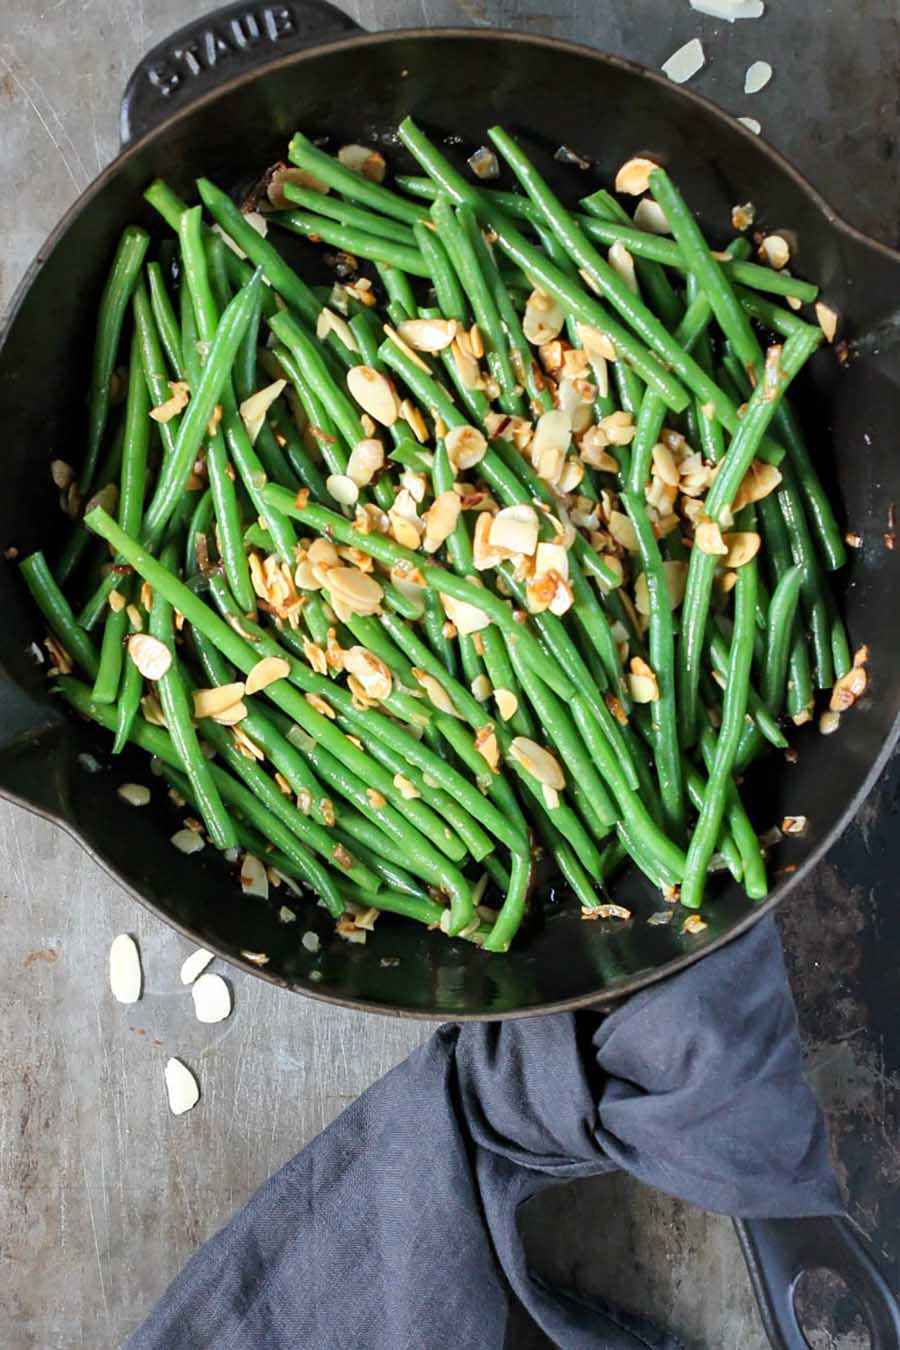 An overhead photo of an iron skillet with green beans sitting on a wooden table.